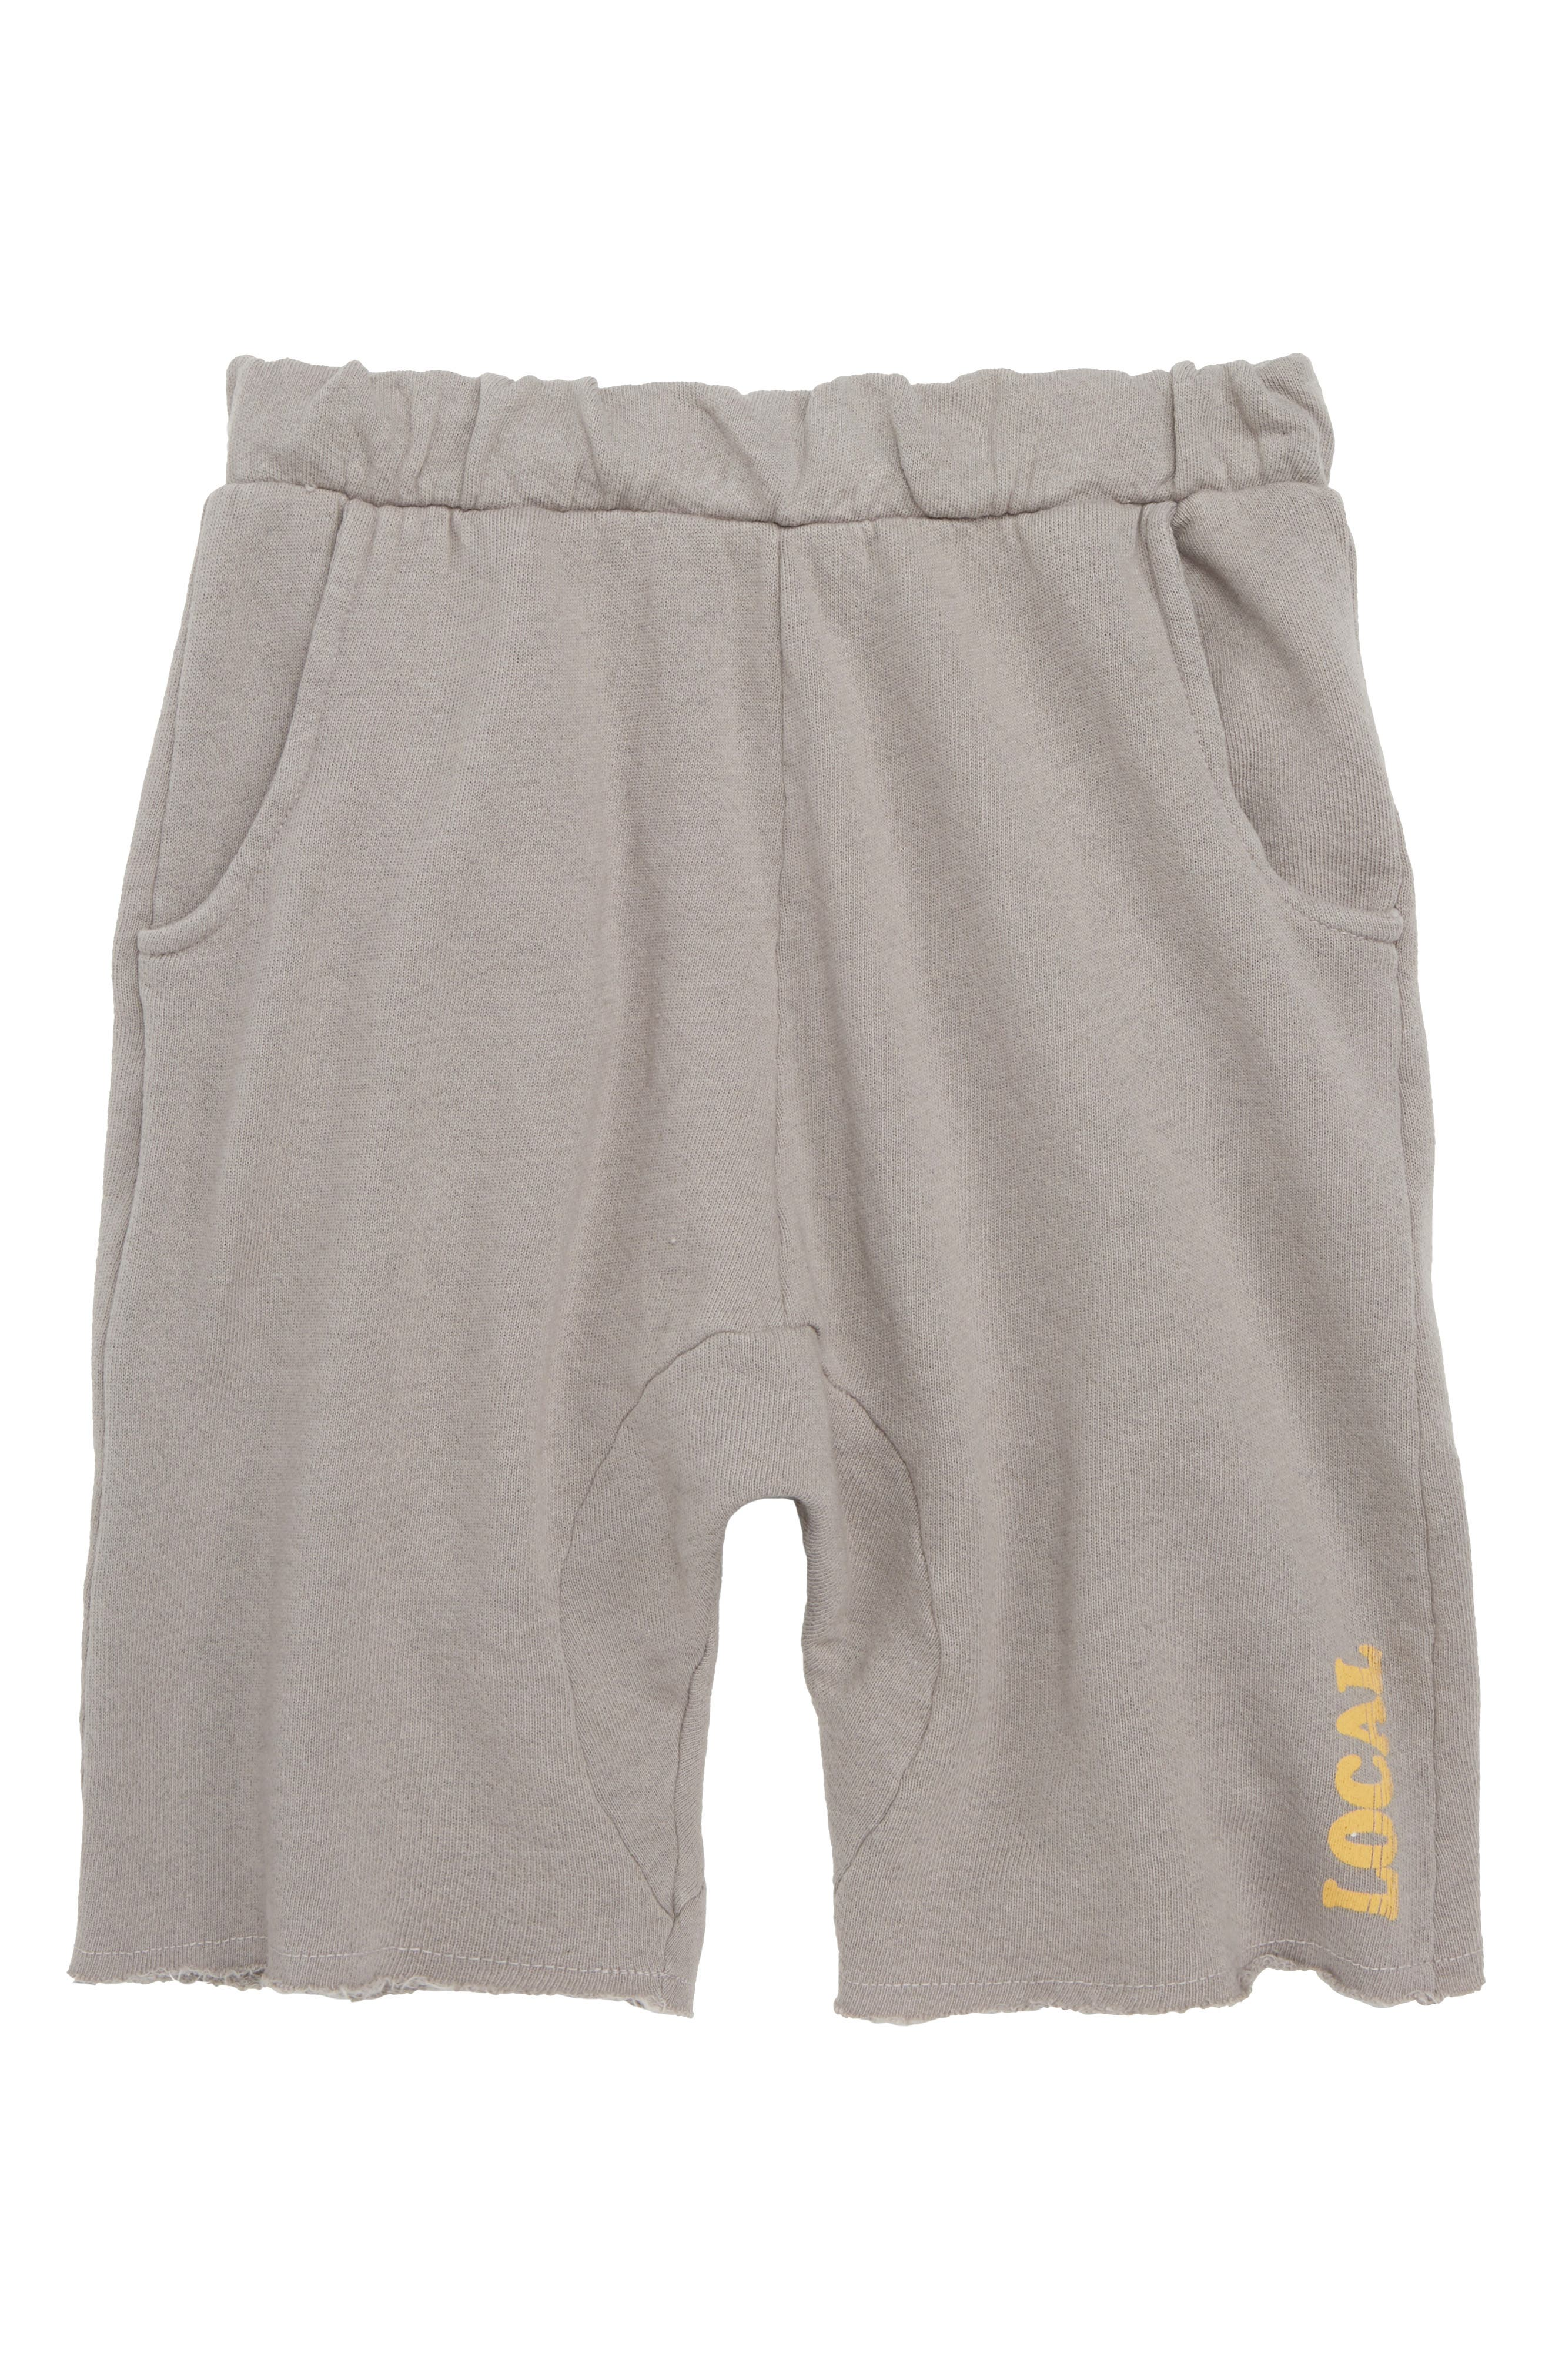 Cozy Time Shorts,                         Main,                         color, Gray